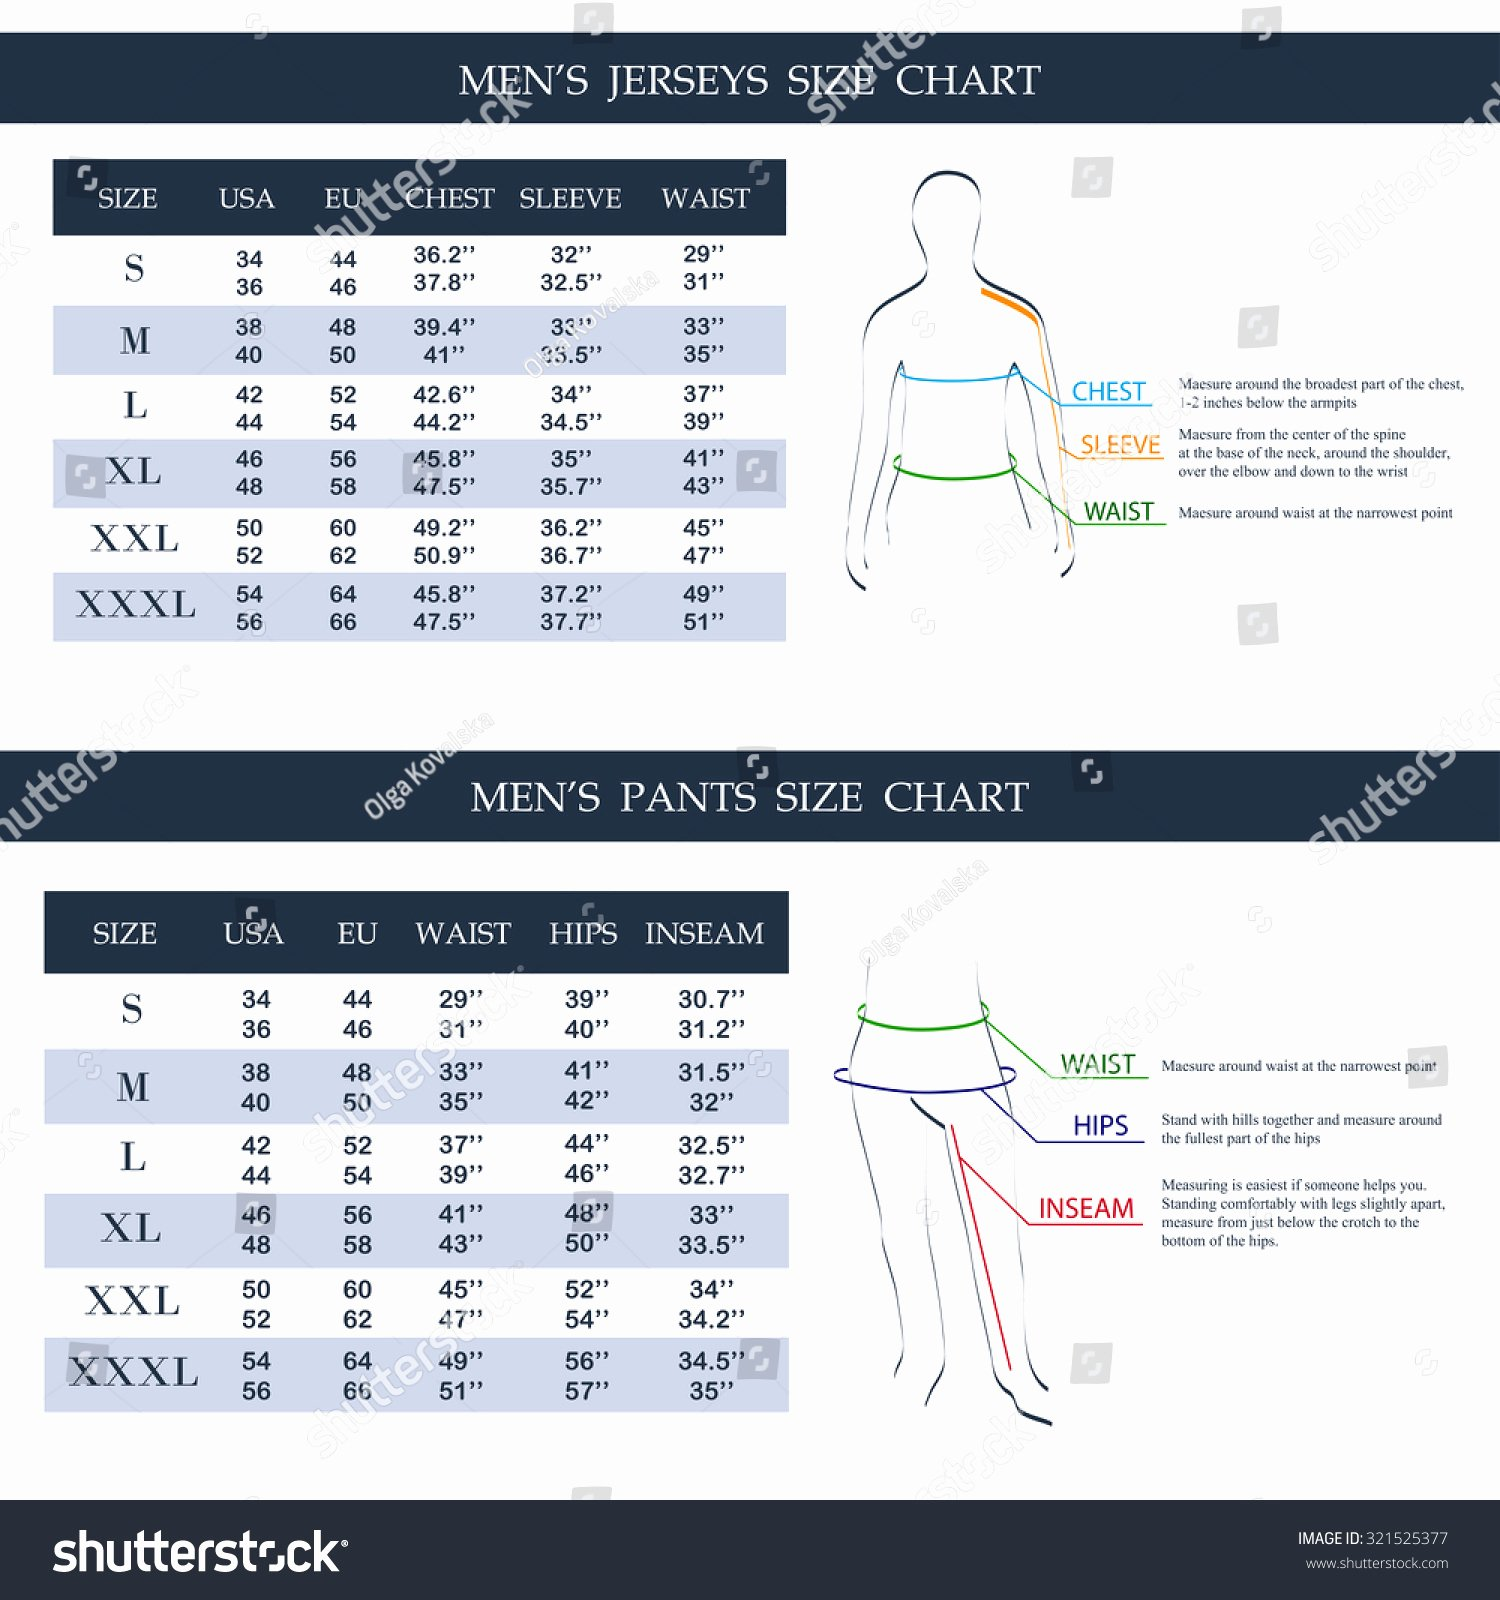 Clothing Size Chart Template New Men S Jerseys Size Chart Men S Pants Size Chart